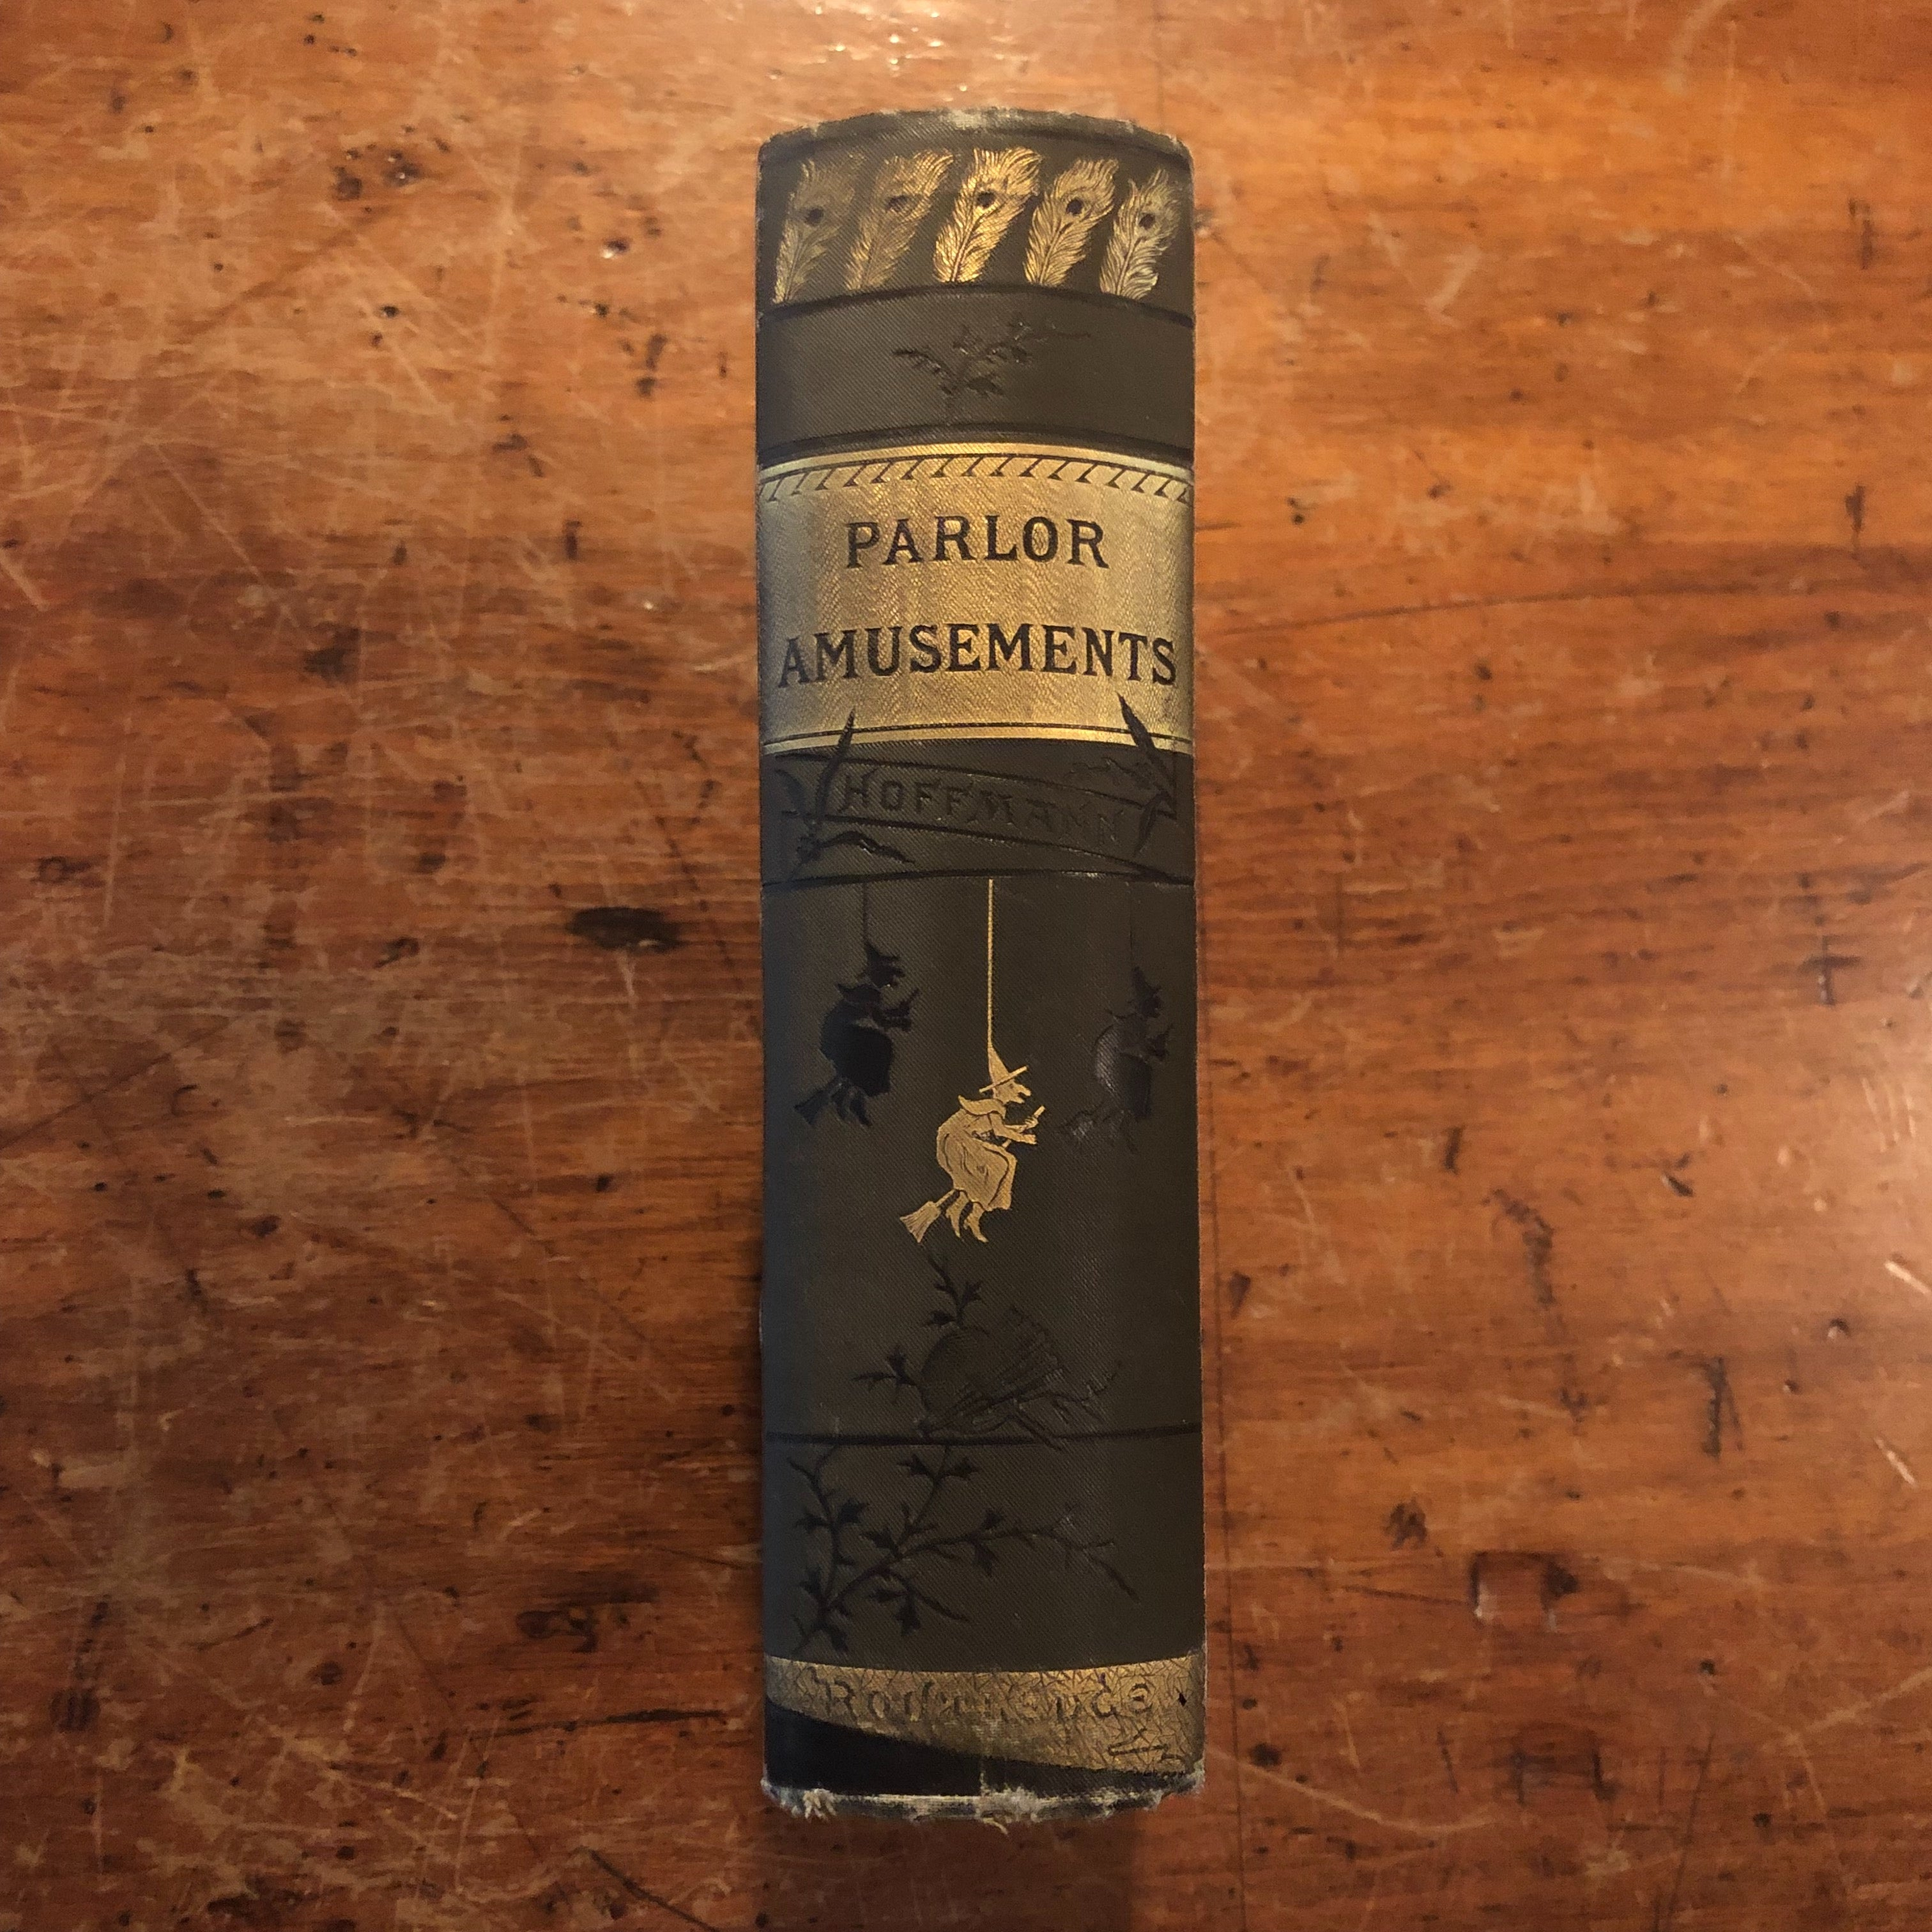 Parlor Amusements and Evening Party Entertainments Book | Professor Hoffman